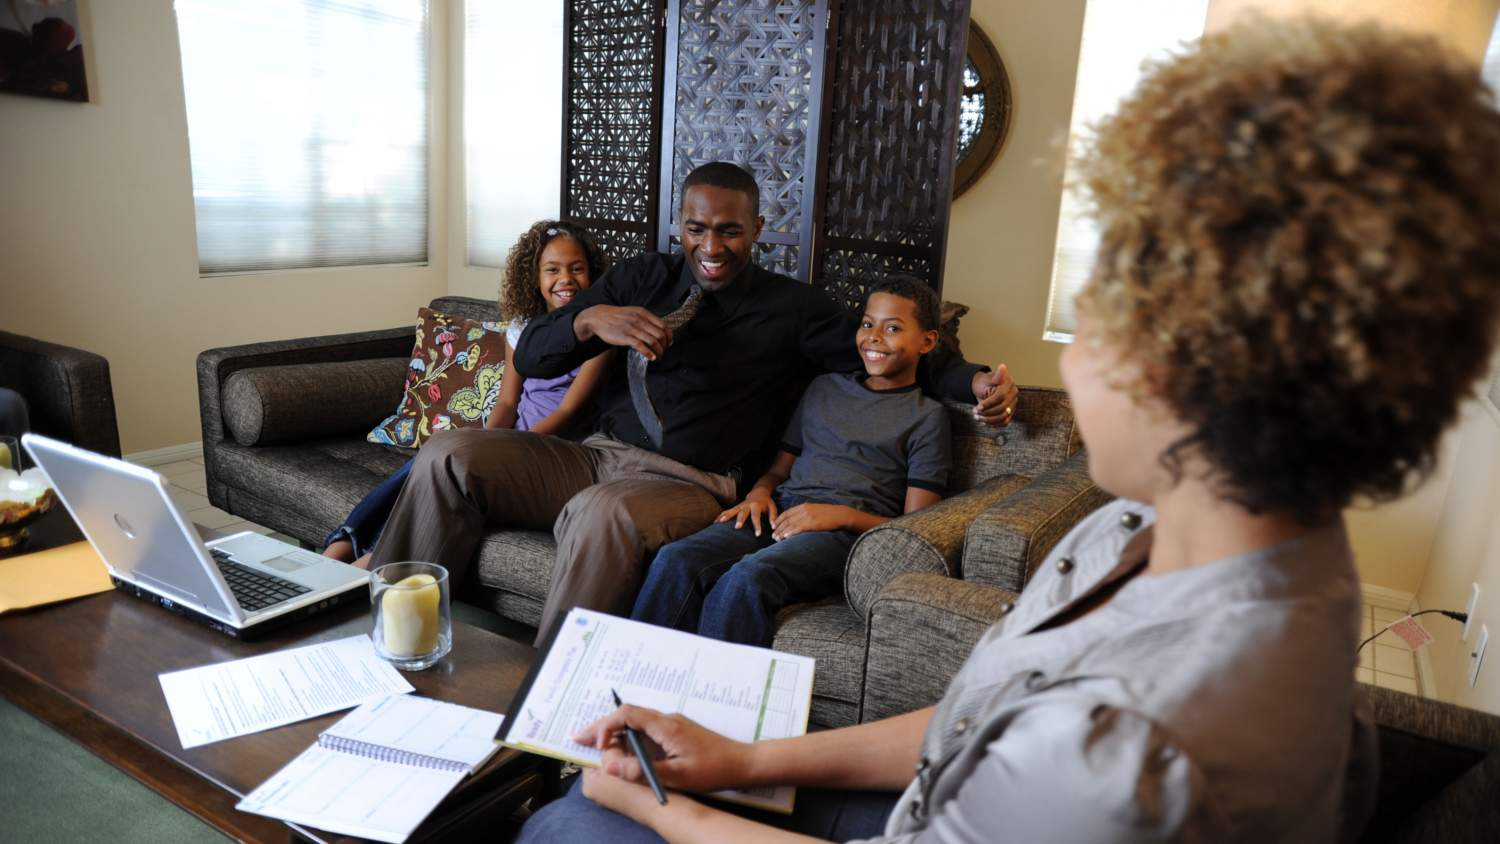 Family preparing a plan together